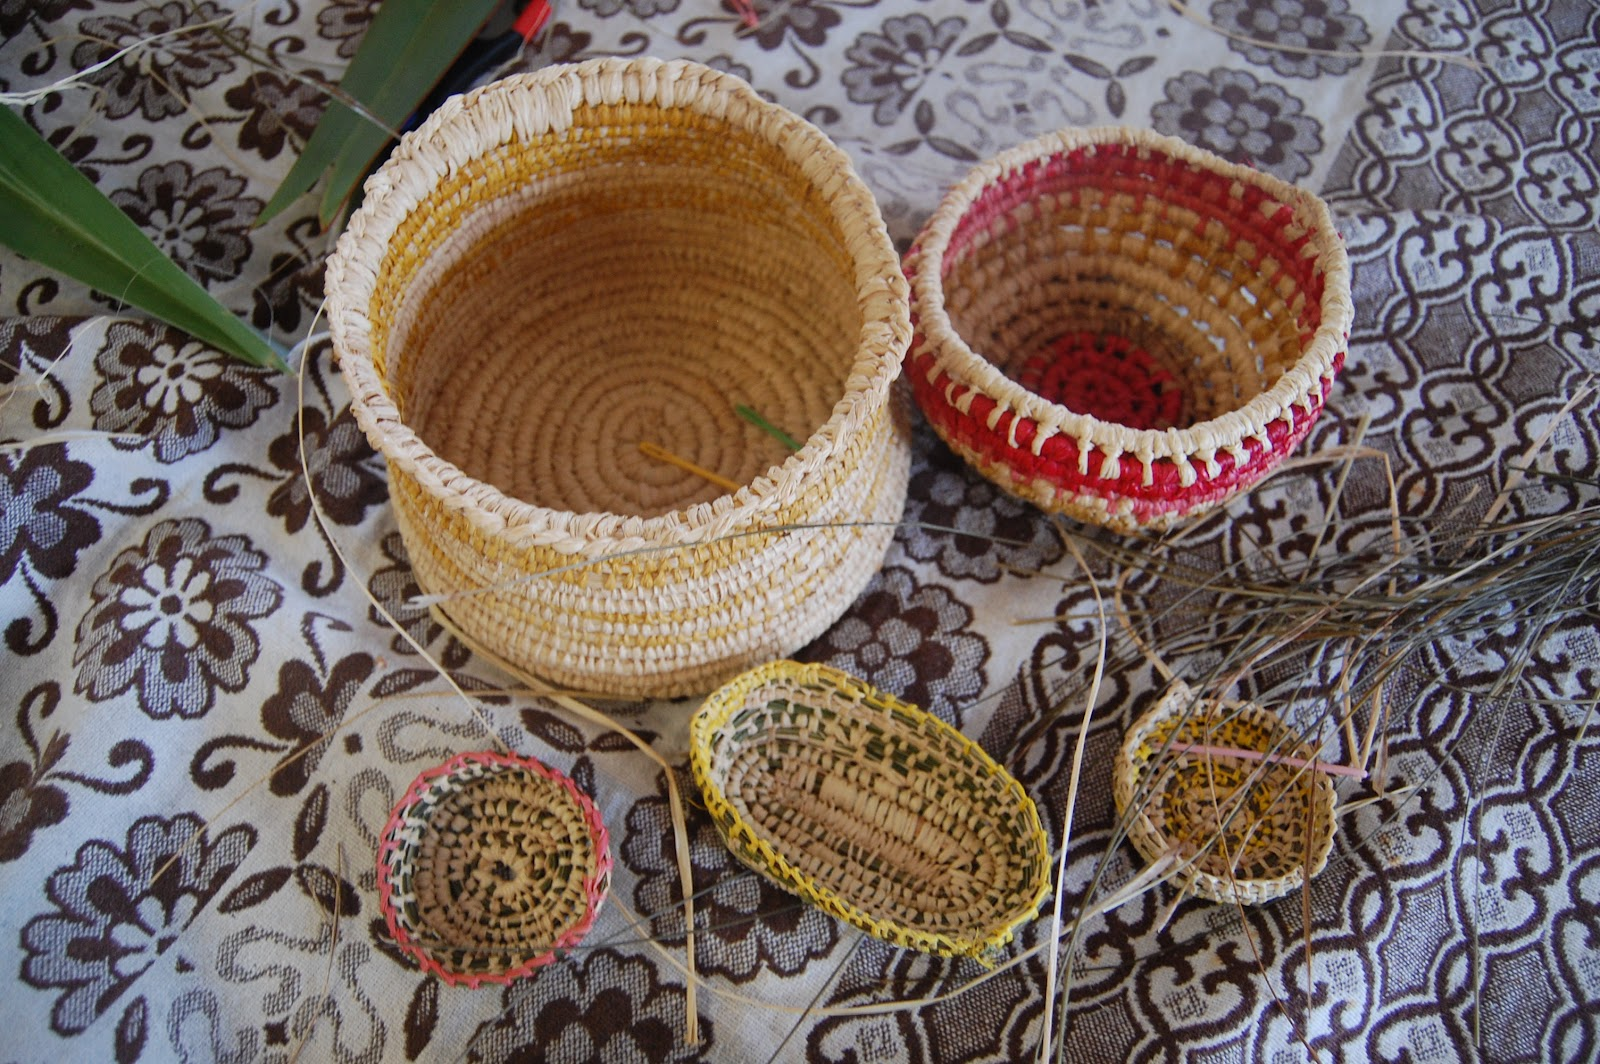 How To Make A Weave A Basket : Simple basket weaving tutorial with deb cole